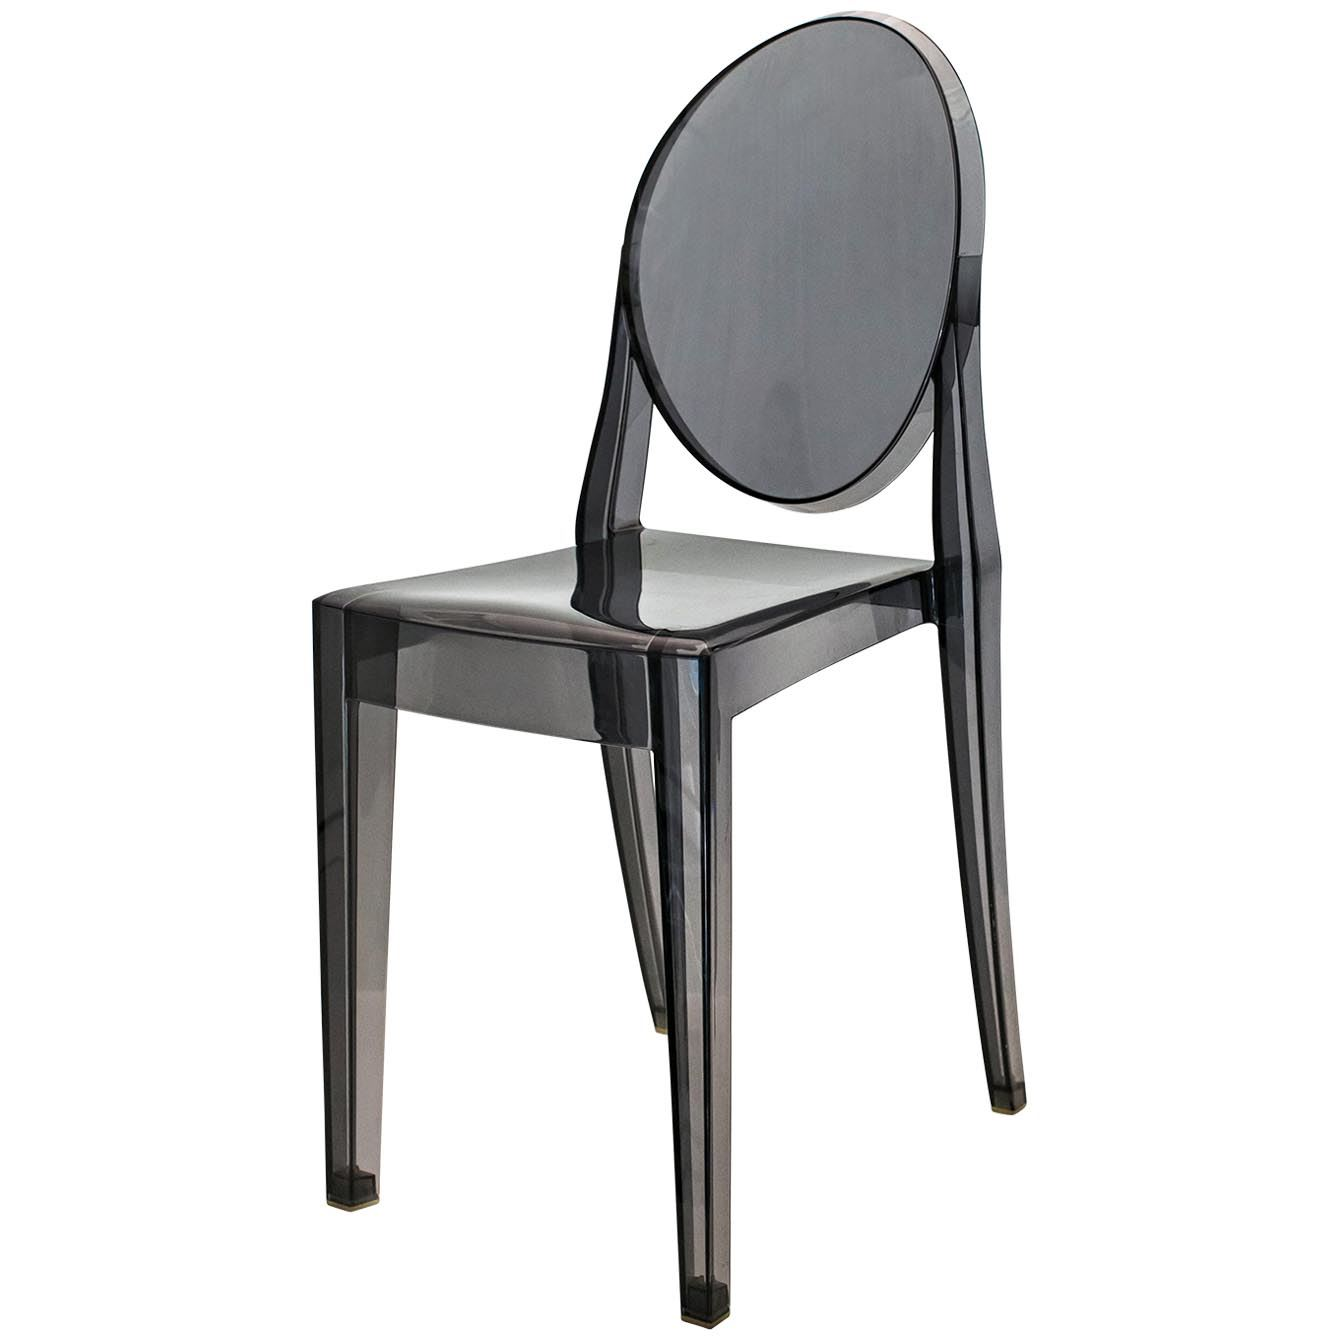 Eames inspired eiffel ghost chair with or no arm dining chairs retro panton ebay - Eames ghost chair ...